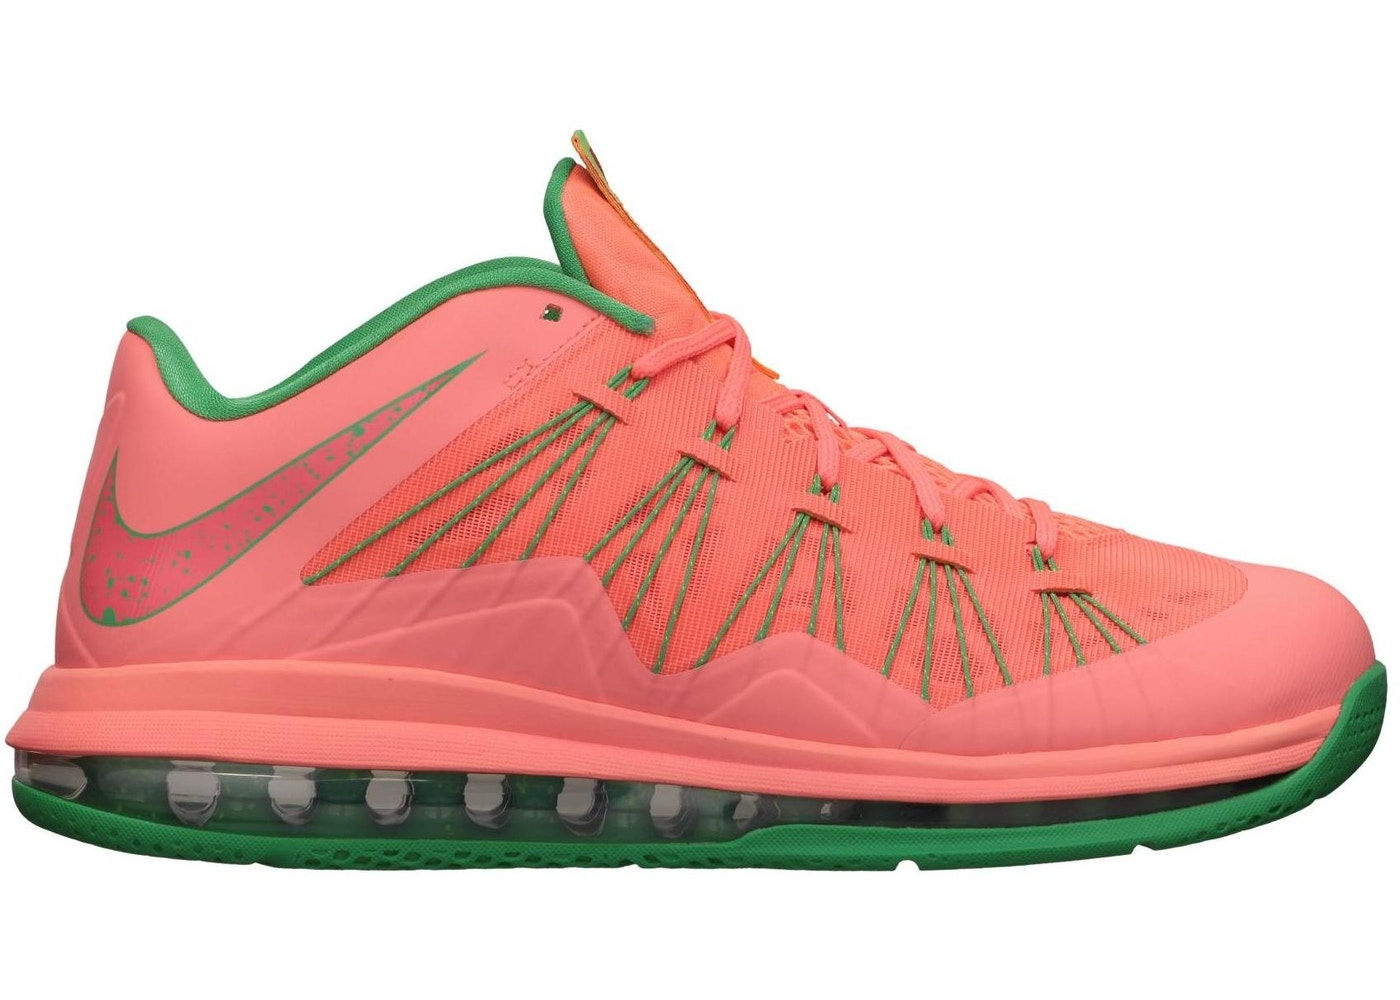 100% authentic ed6bf 032fe LeBron X Low Watermelon